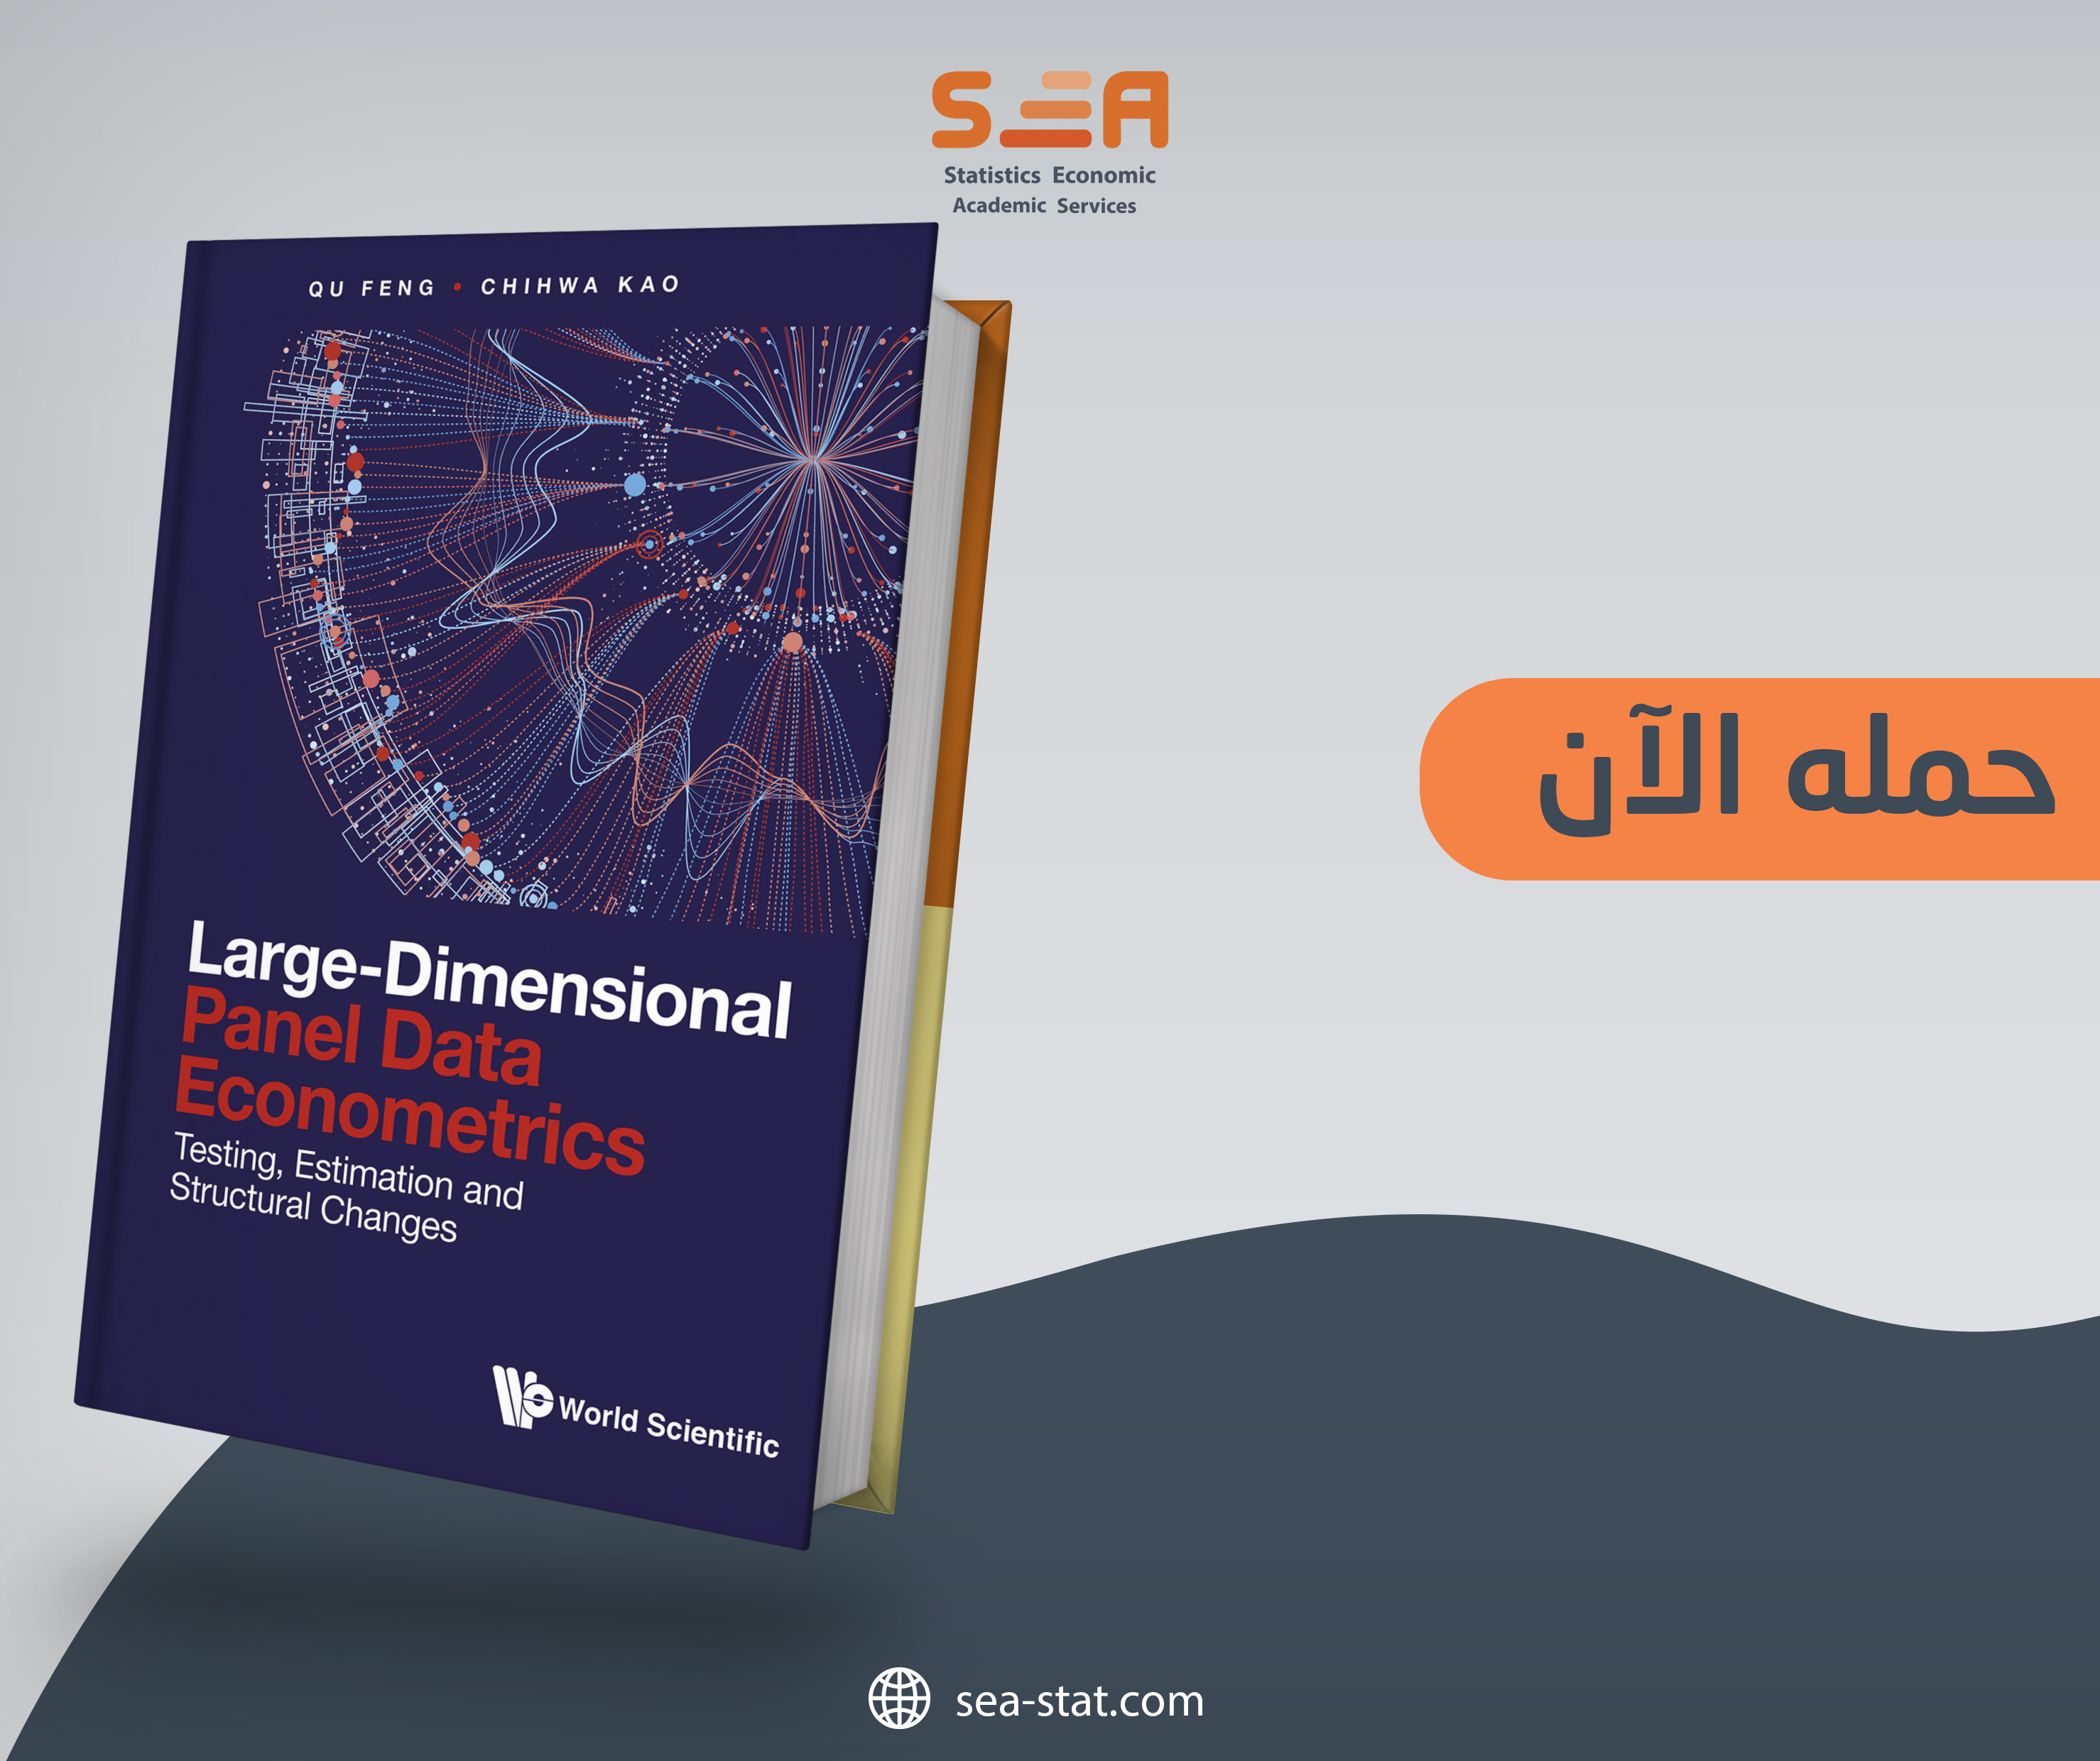 "تحميل كتاب ""Large-Dimensional Panel Data Econometrics Testing, Estimation and Structural Changes "" مجاناً"